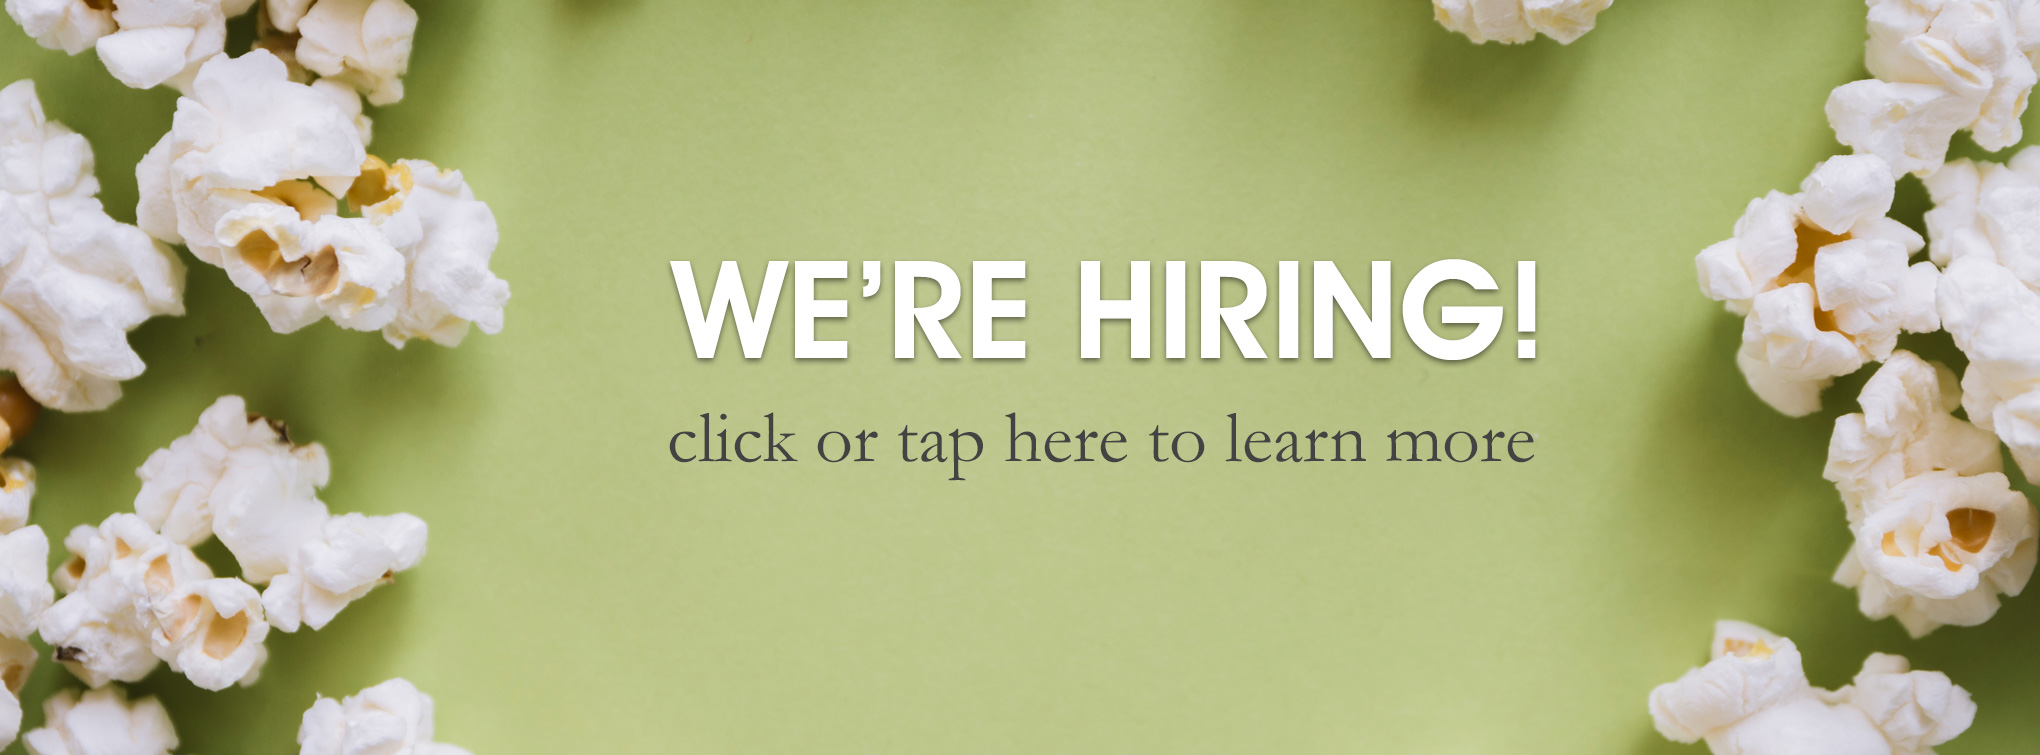 Slider image - we're hiring! click or tap here to learn more